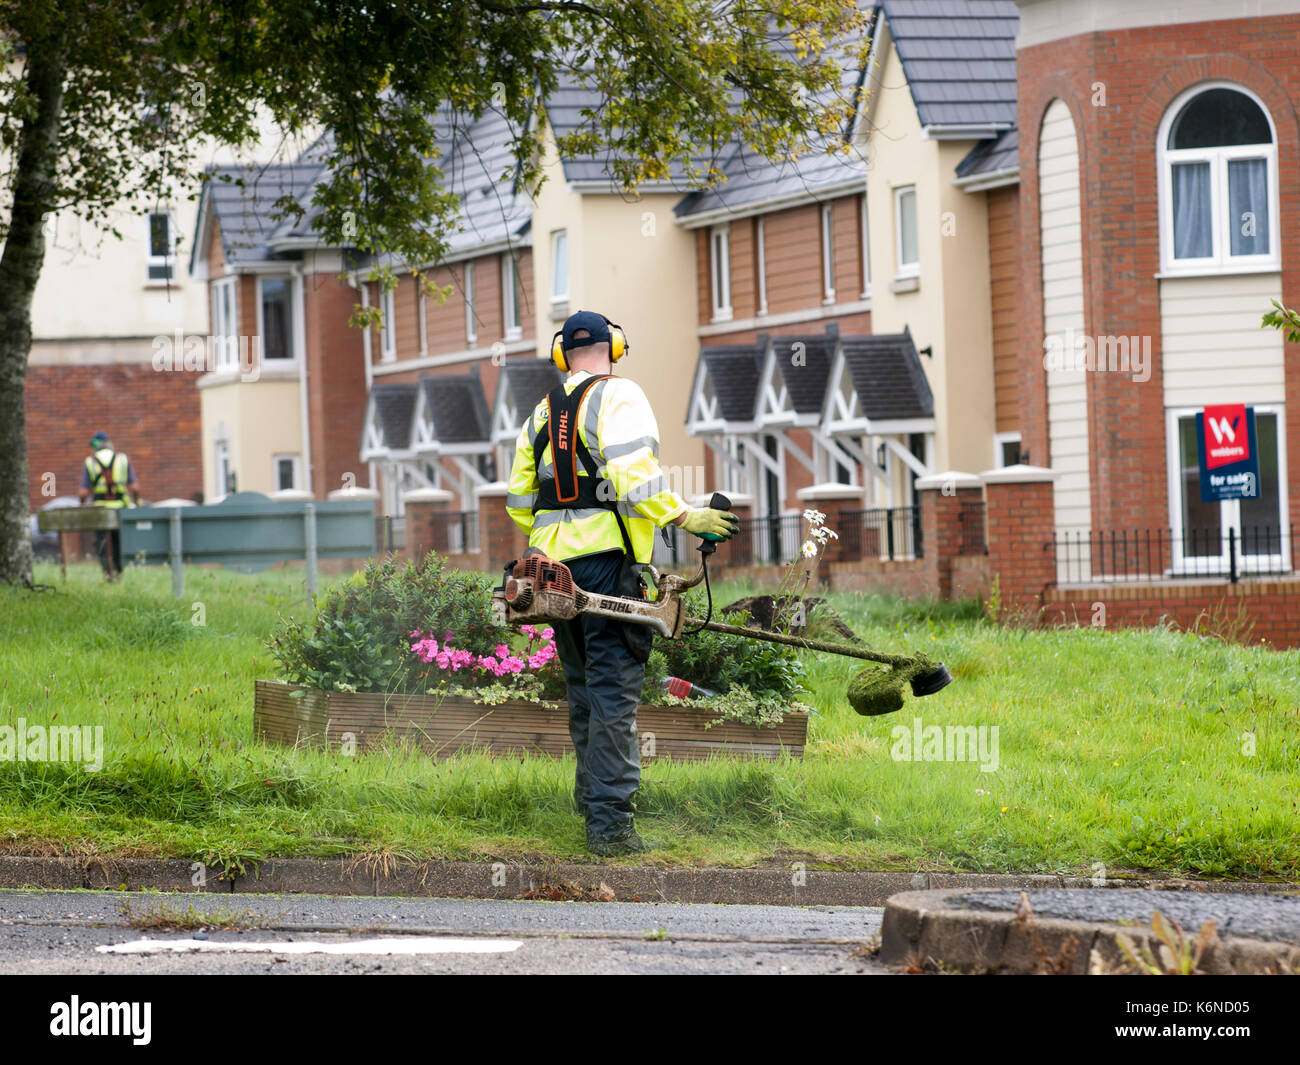 Worker in high vis jacket cutting grass with a petrol strimmer - Stock Image